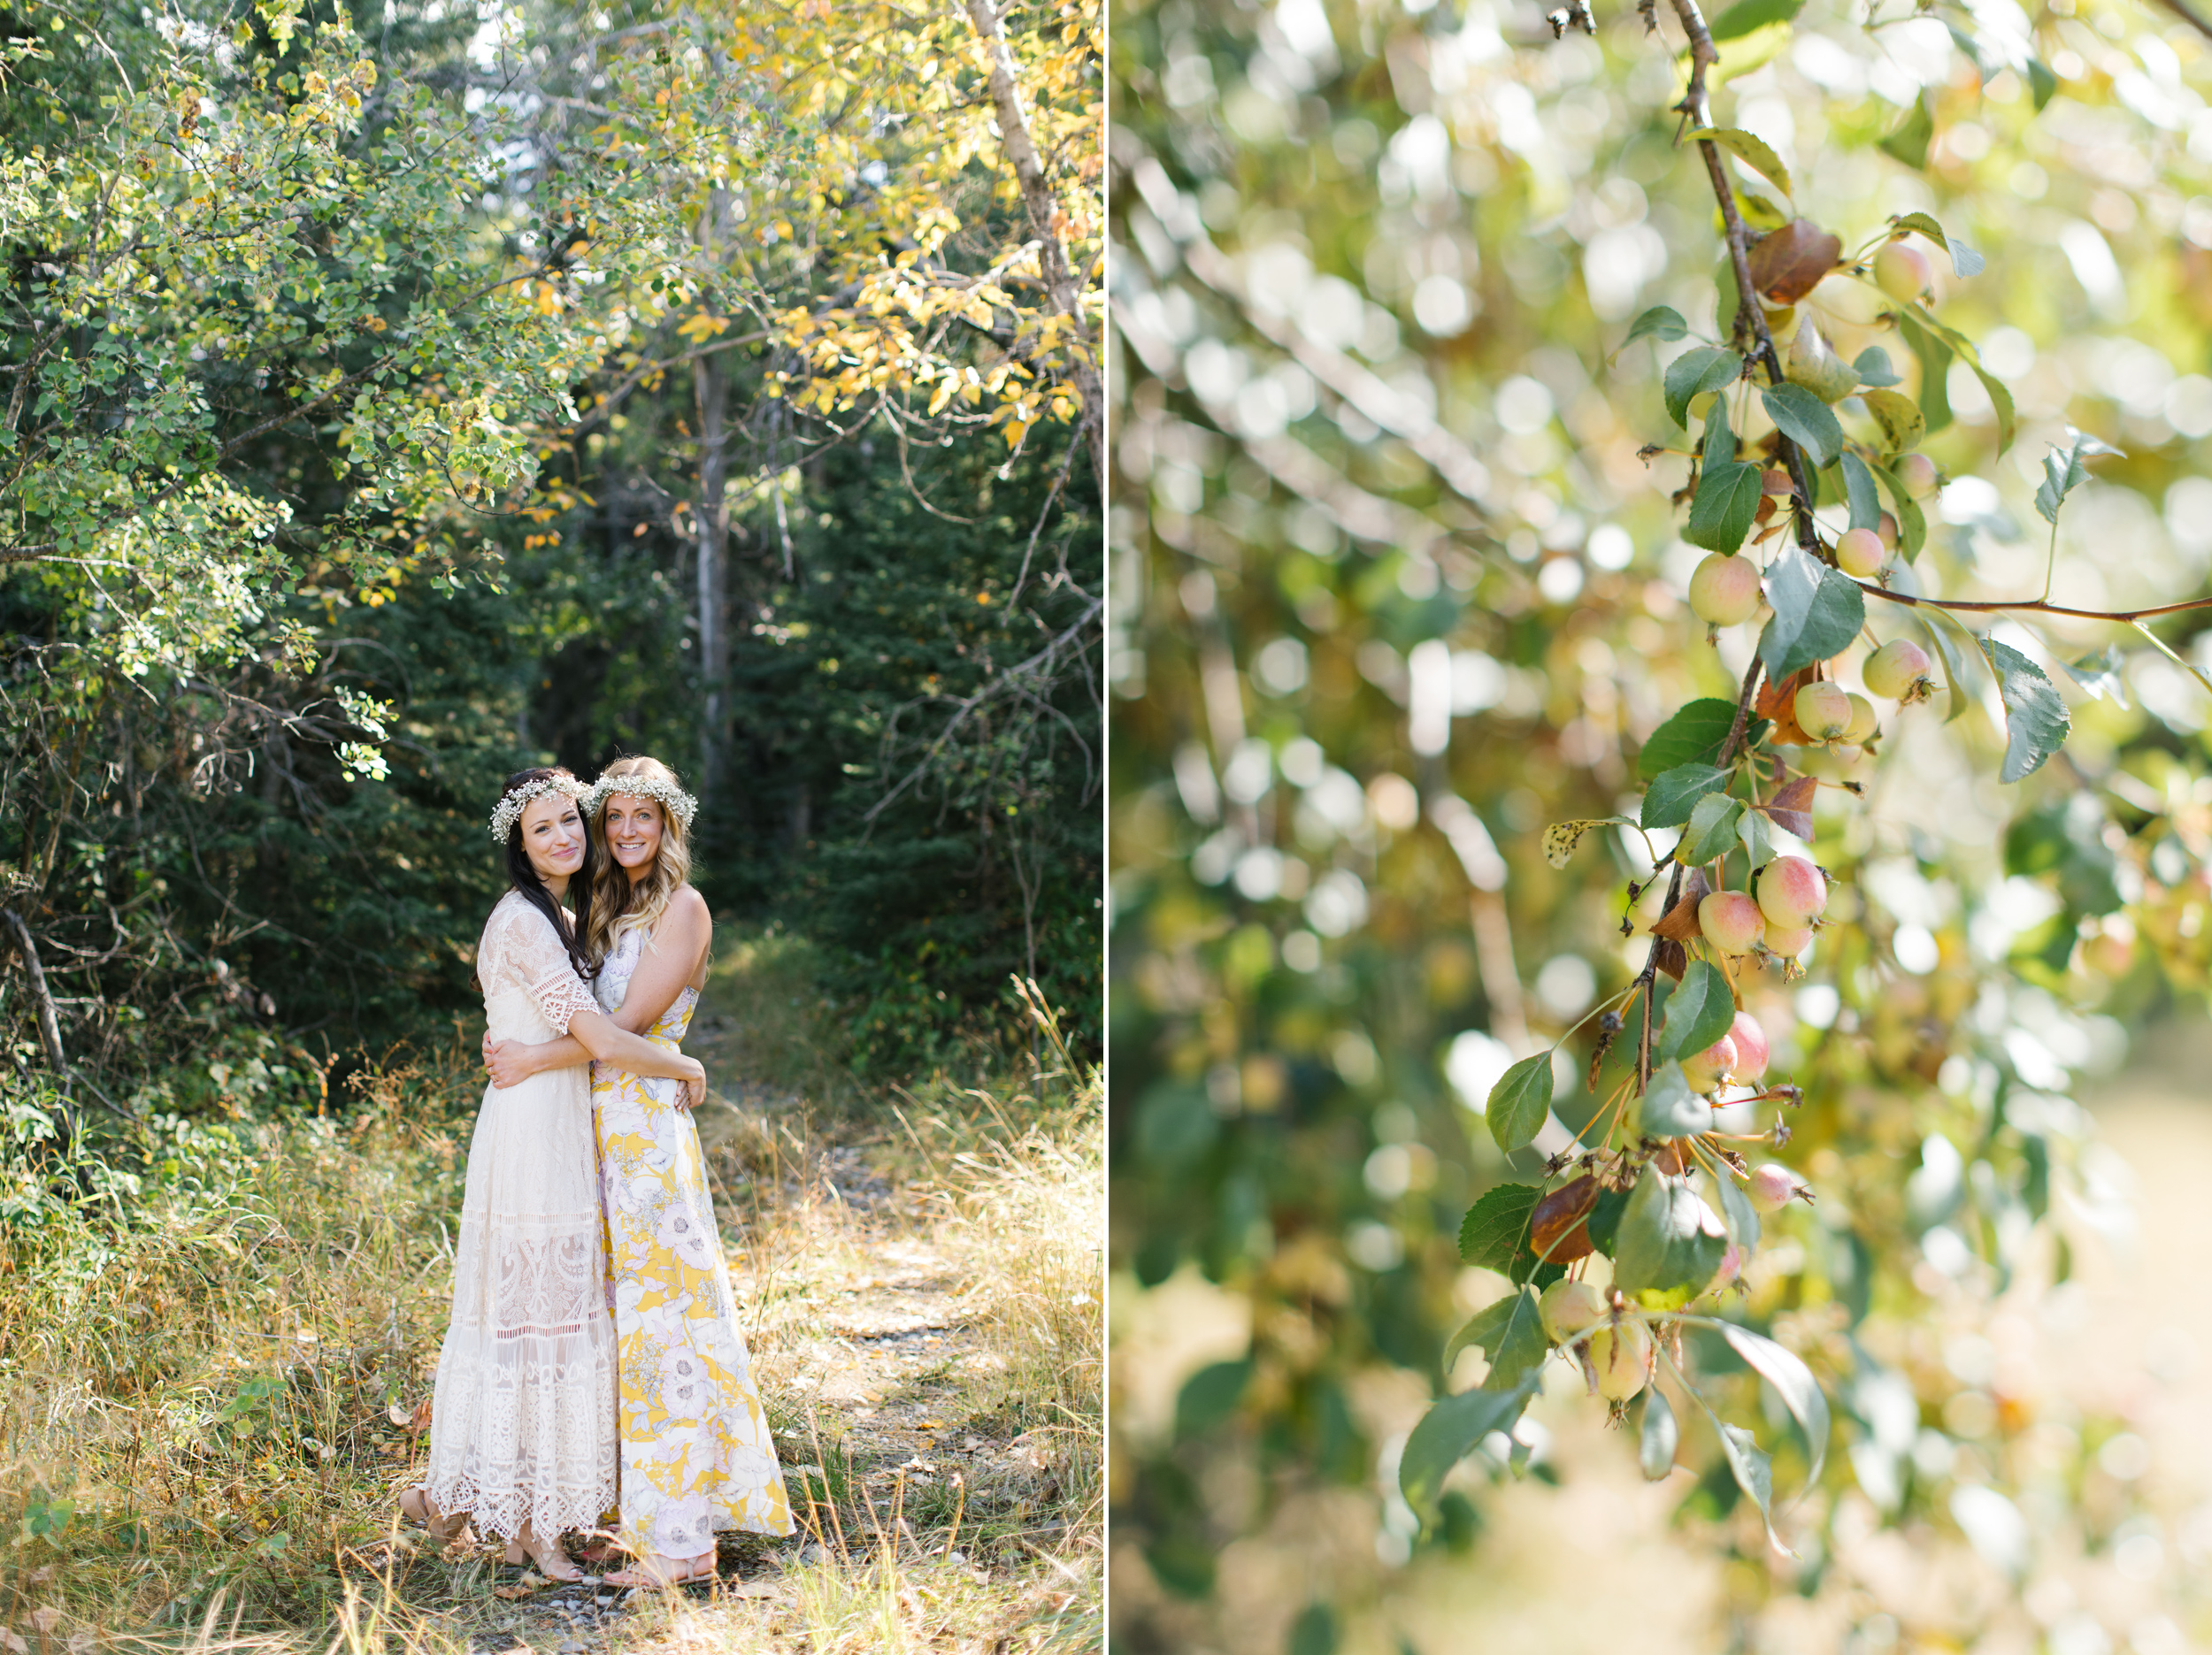 Calgary_Intimate_Backyard_Wedding0017.jpg